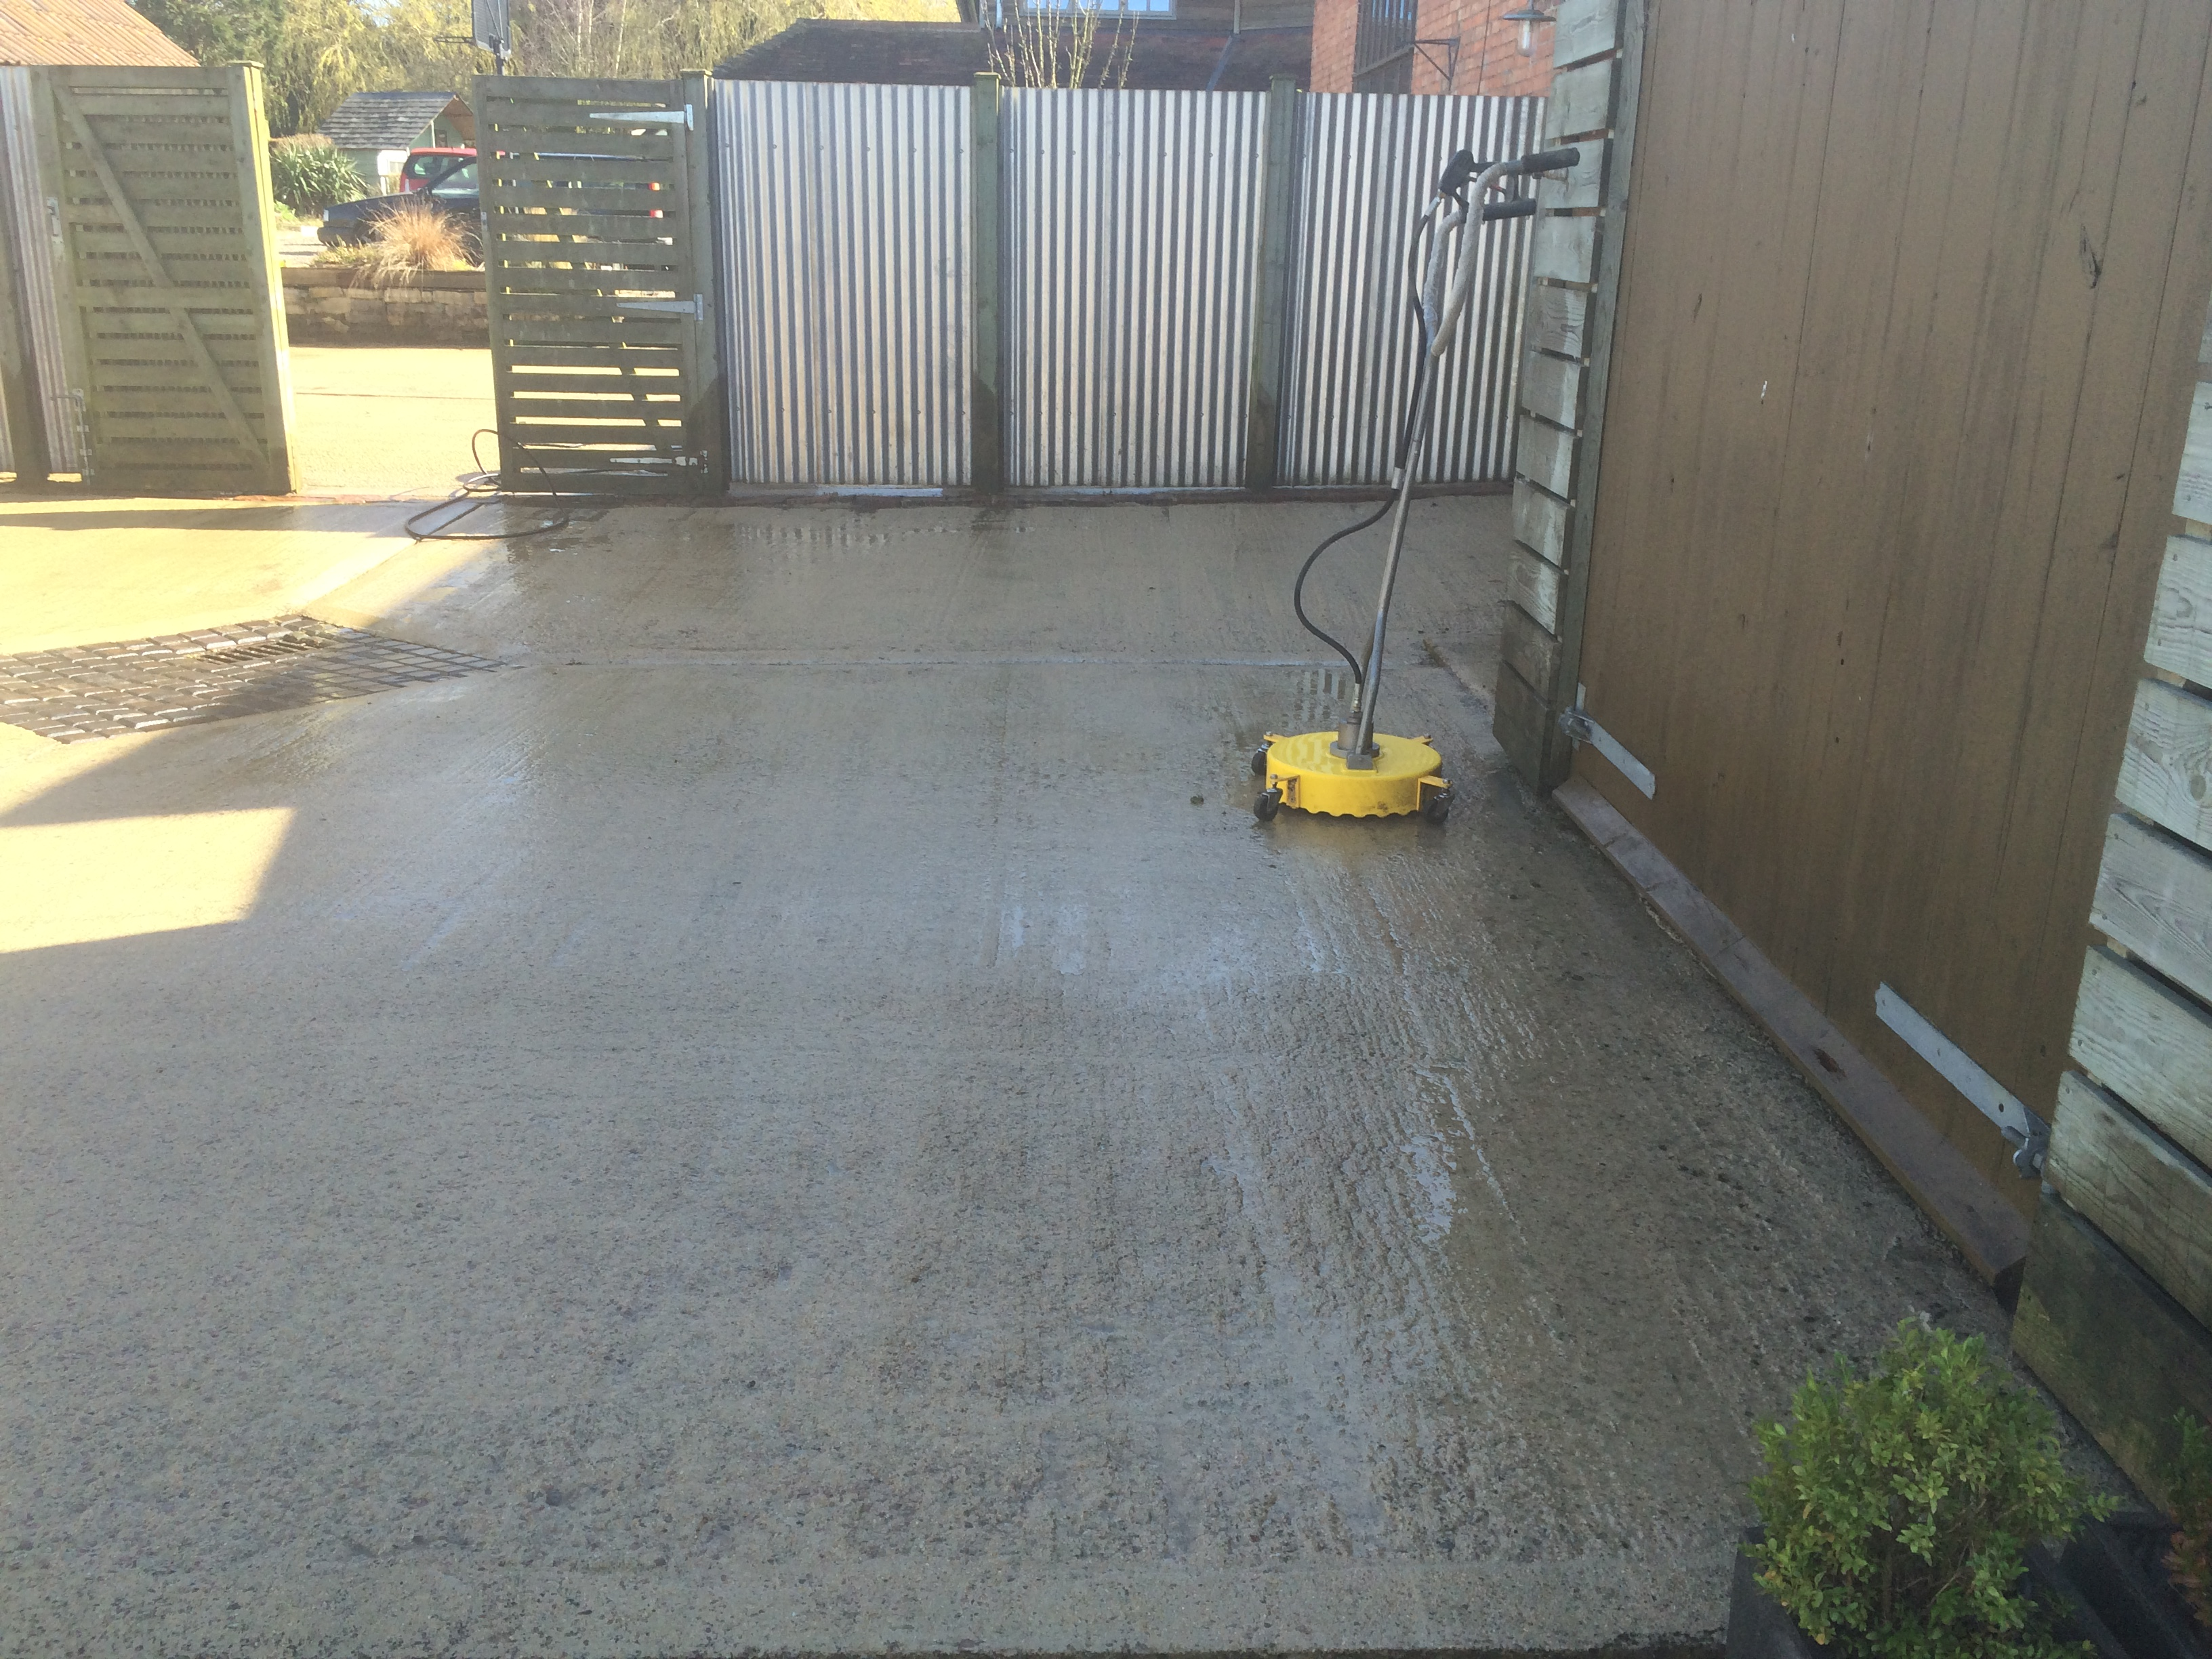 concrete yard now cleaned